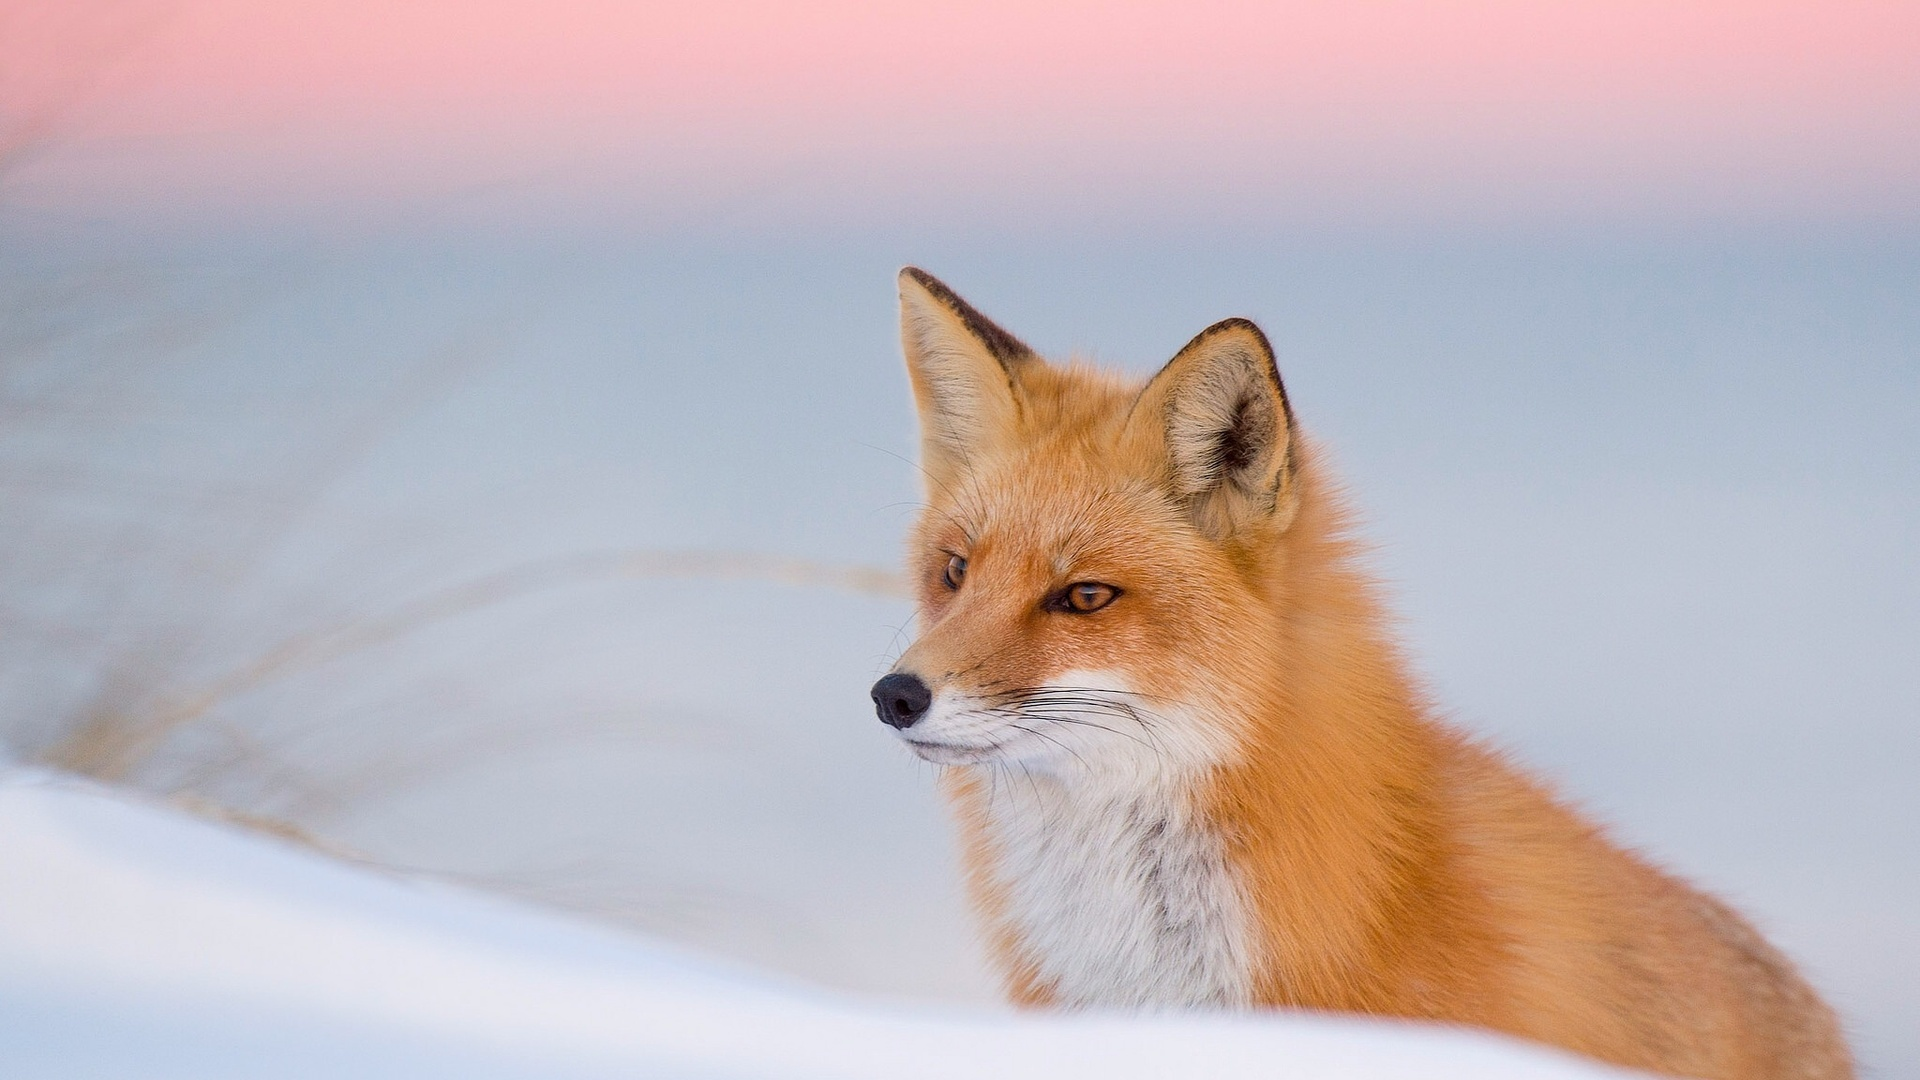 Winter Fox Red Nature Wallpapers 1920x1080 436027